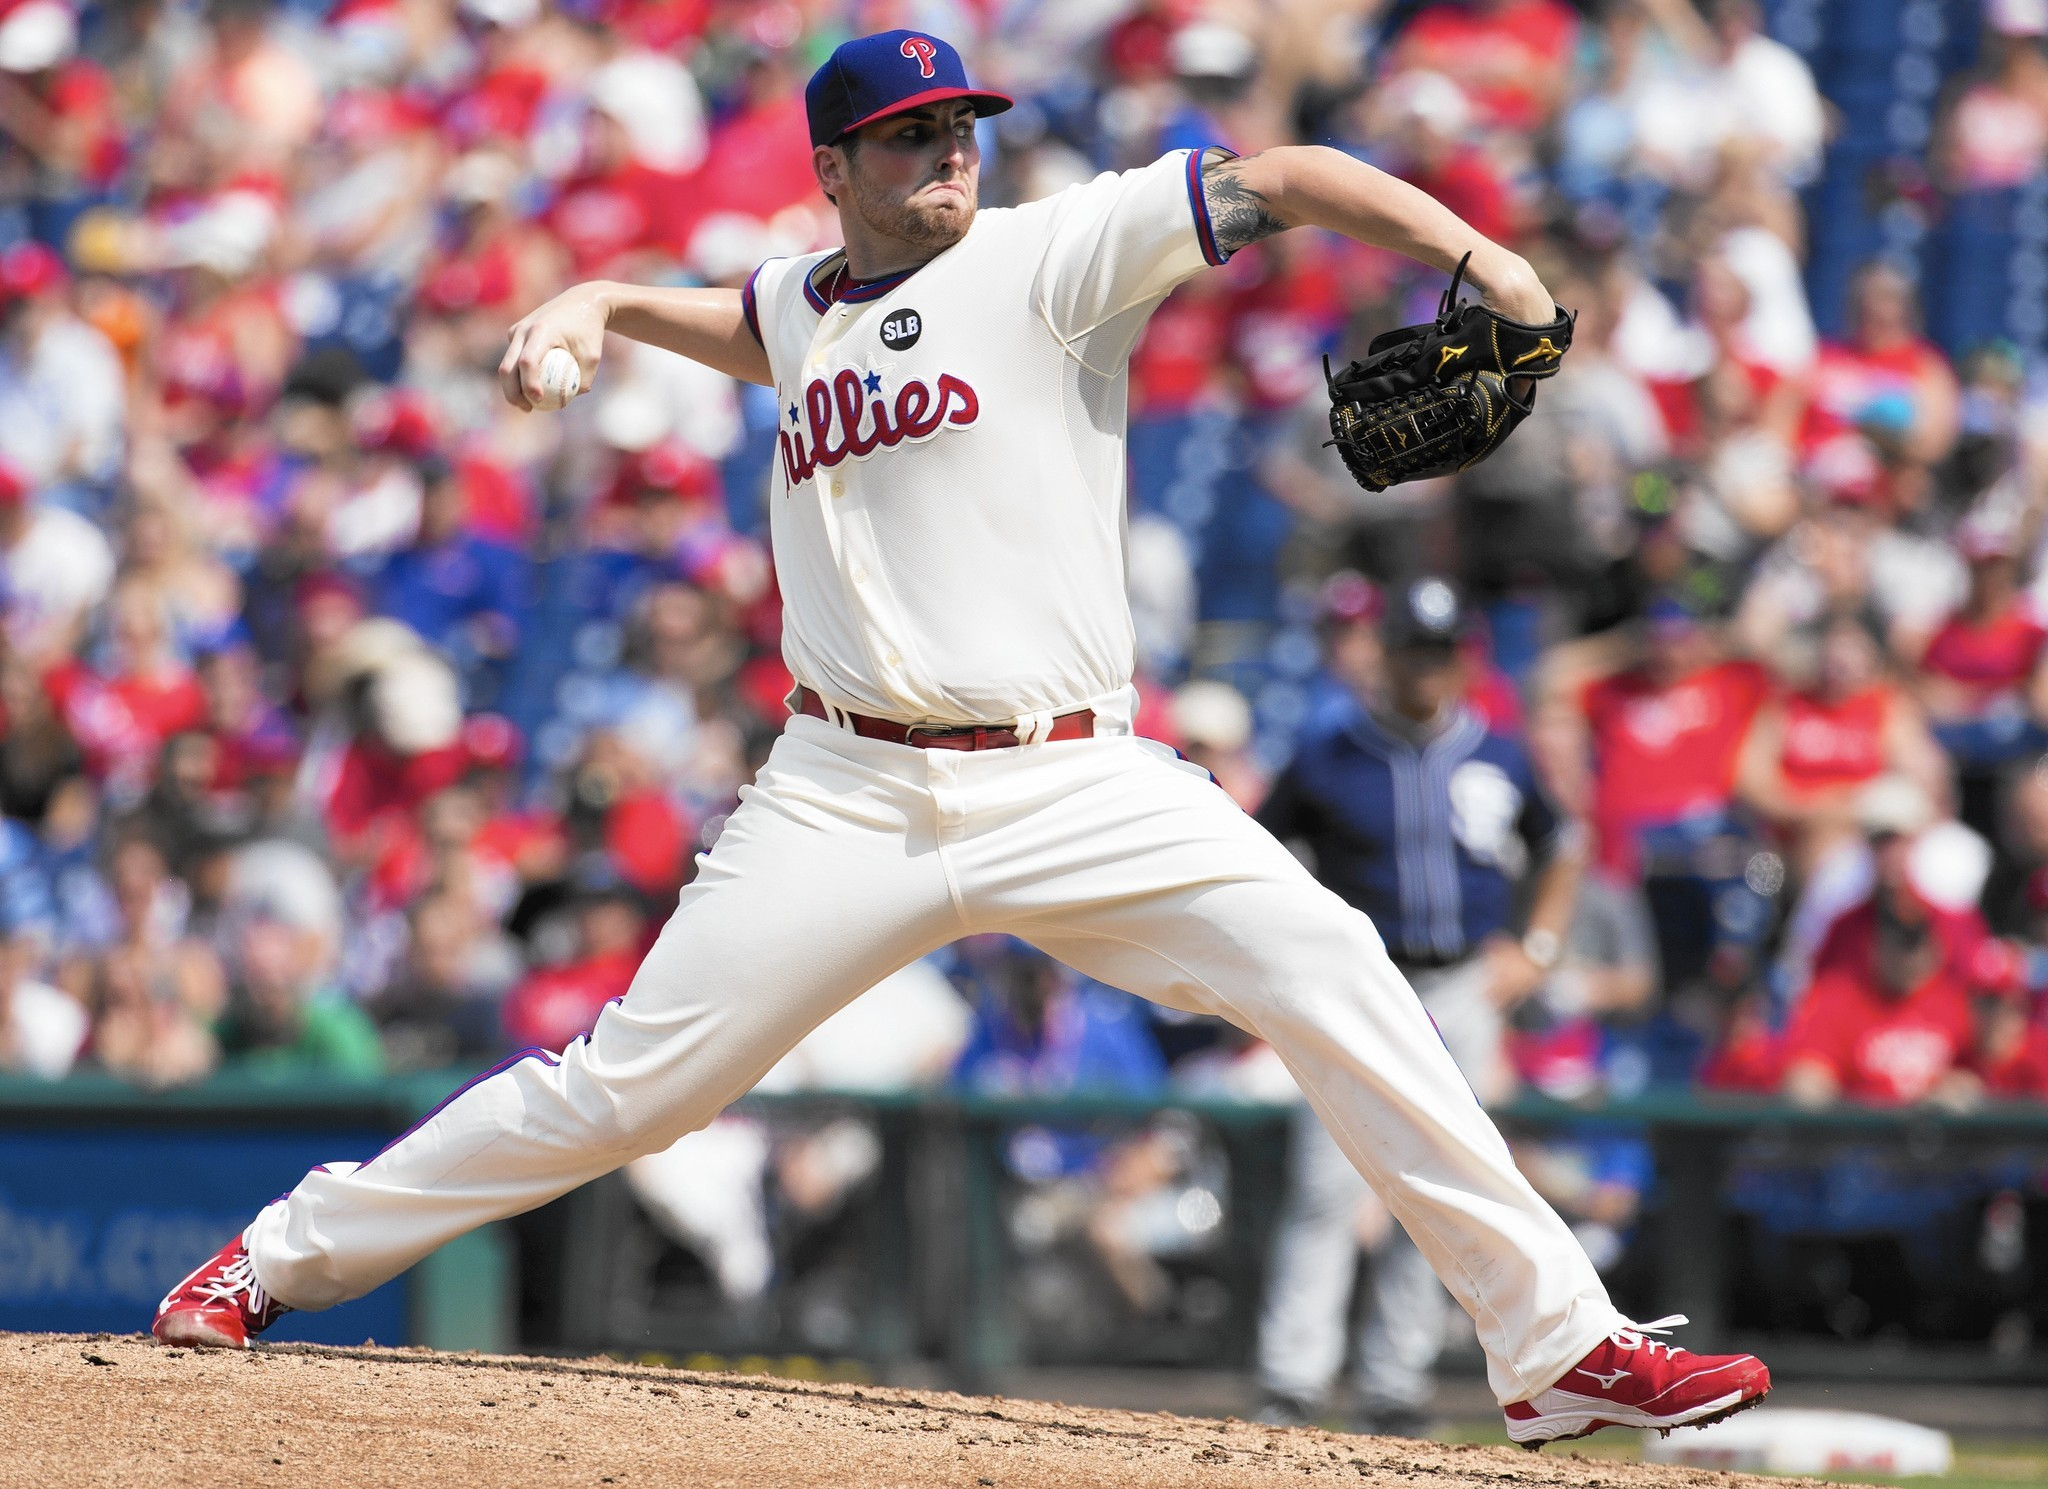 Mc-getting-to-know-phillies-prospects-alec-asher-0211-20160211